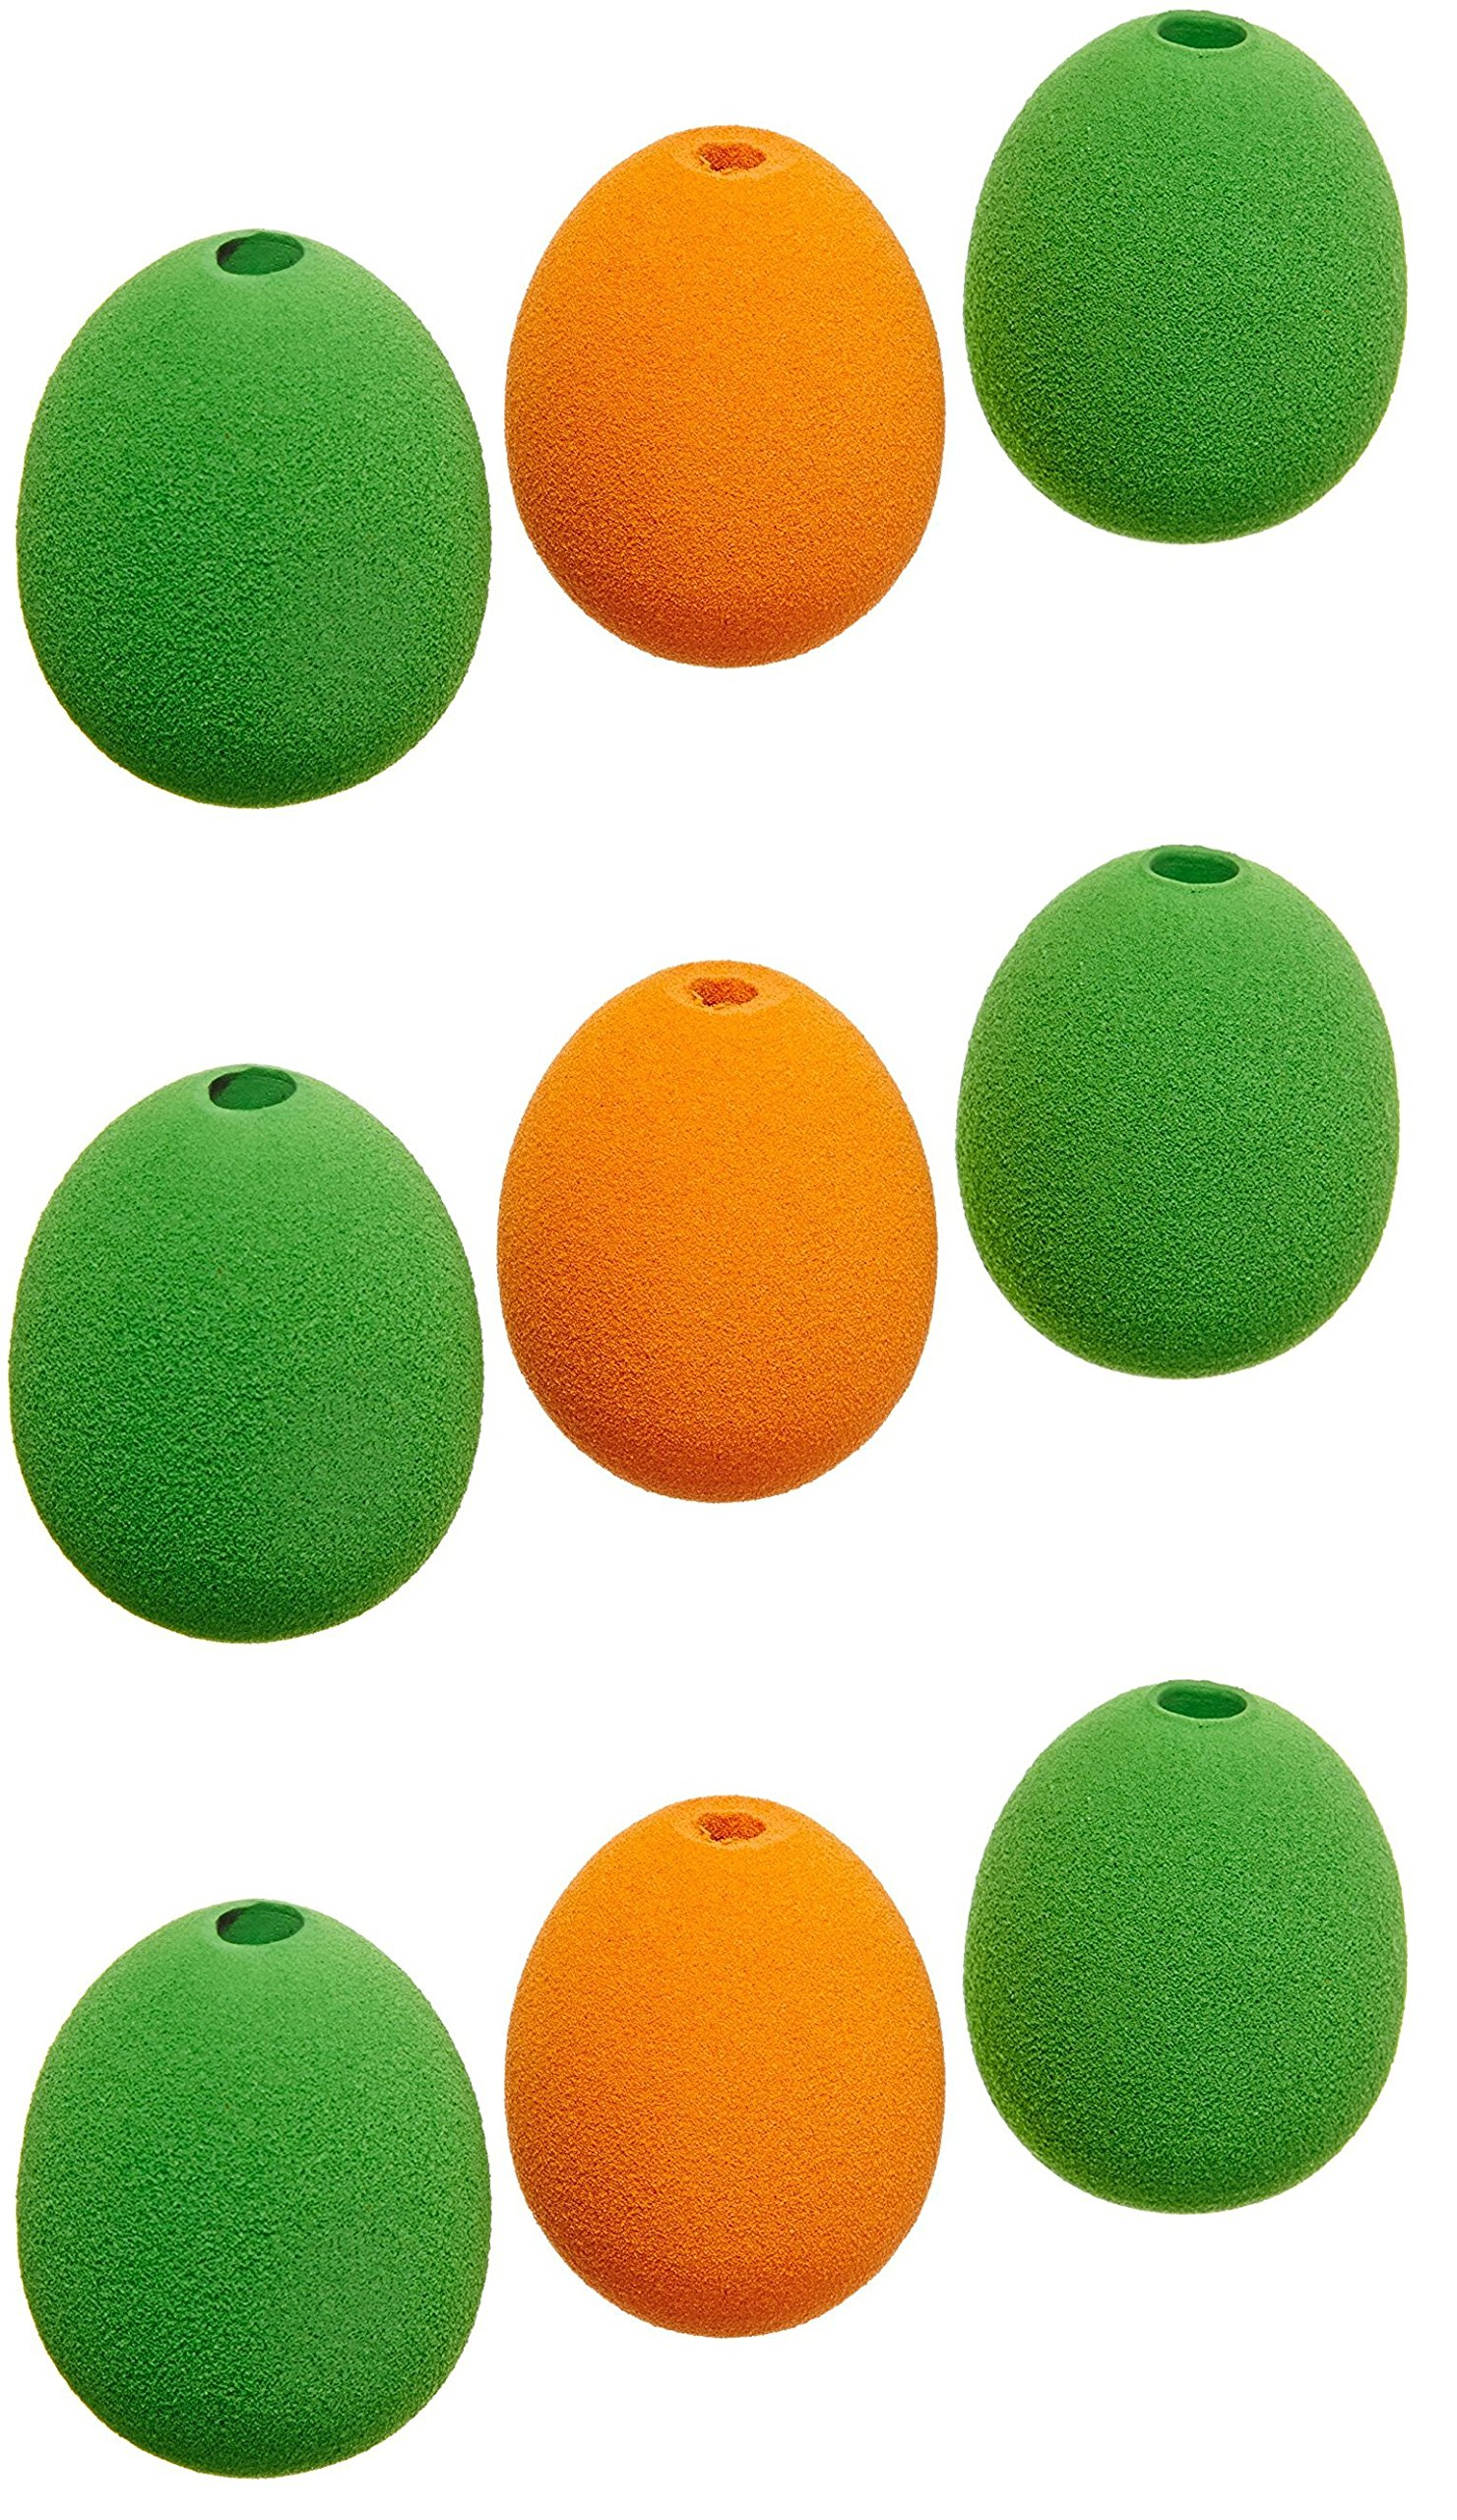 Abilitations Egg OHS Handwriting Grips (9-Pack)